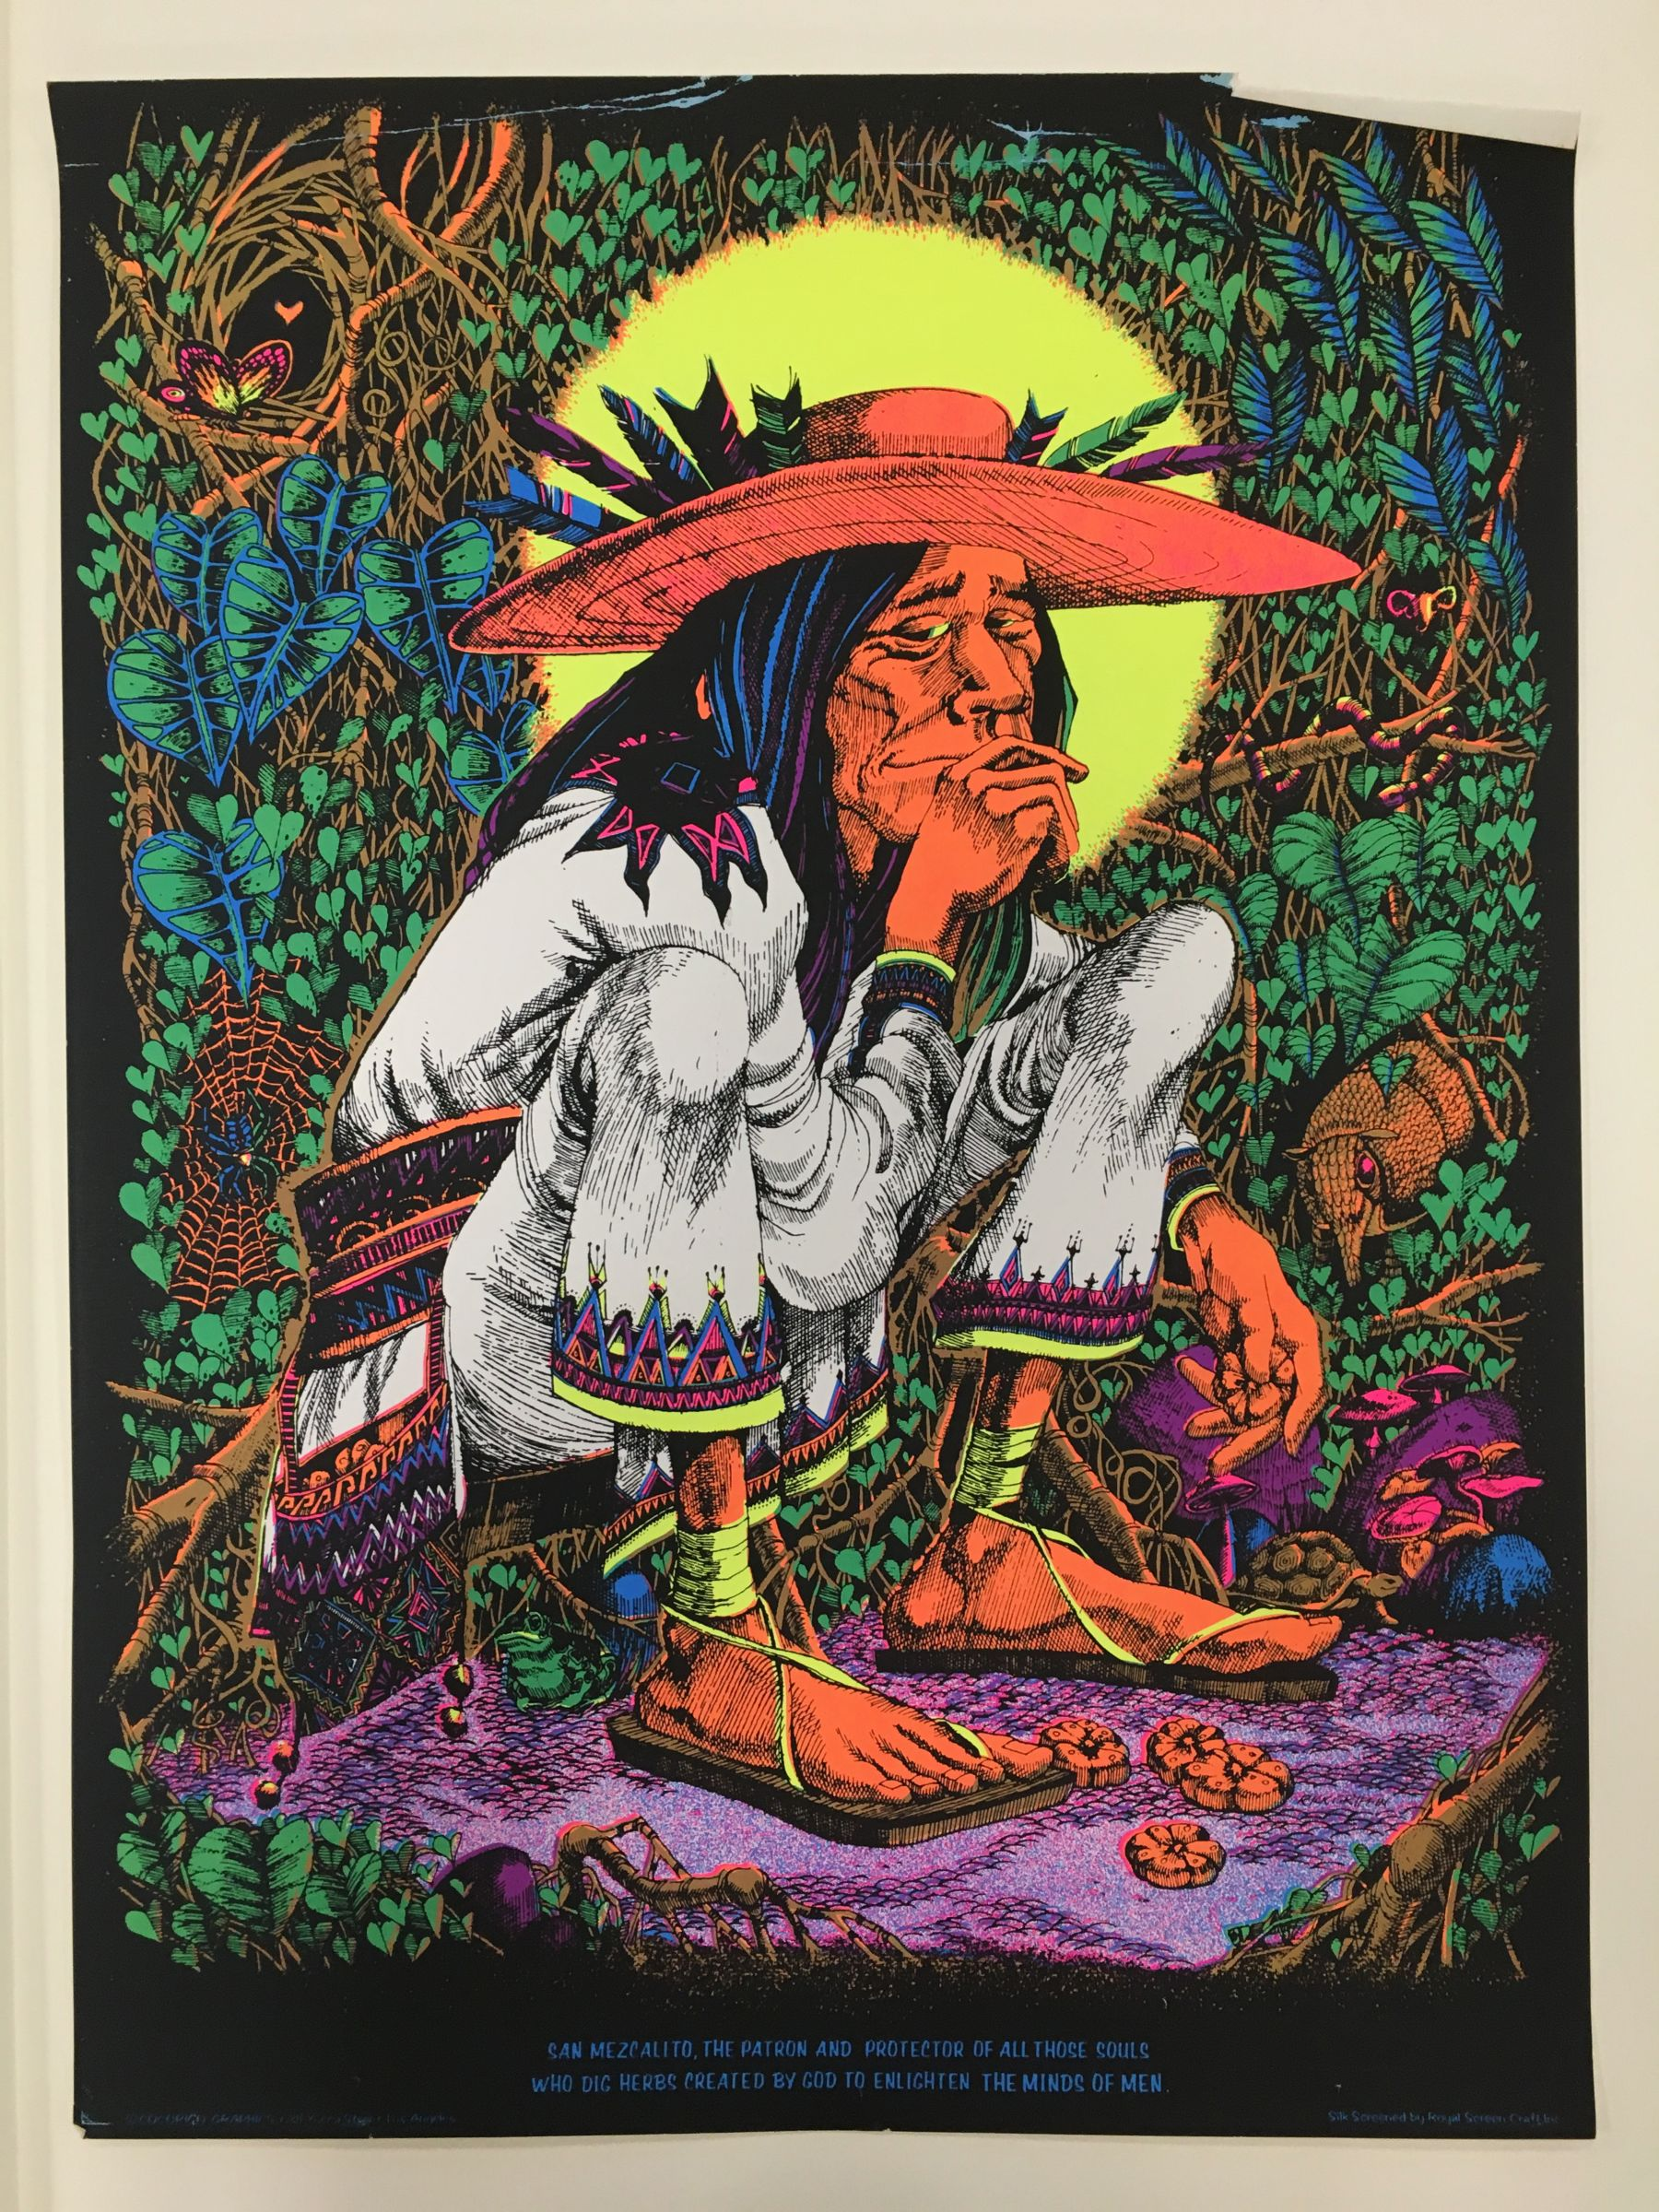 San Mezcalito, the patron and protector of all those souls who dig herbs created by god to enlighten the minds of men. Silk screen by Royal Screen Craft Inc., Cocorico Graphics, artwork by Rick Griffin : blacklight poster, undated